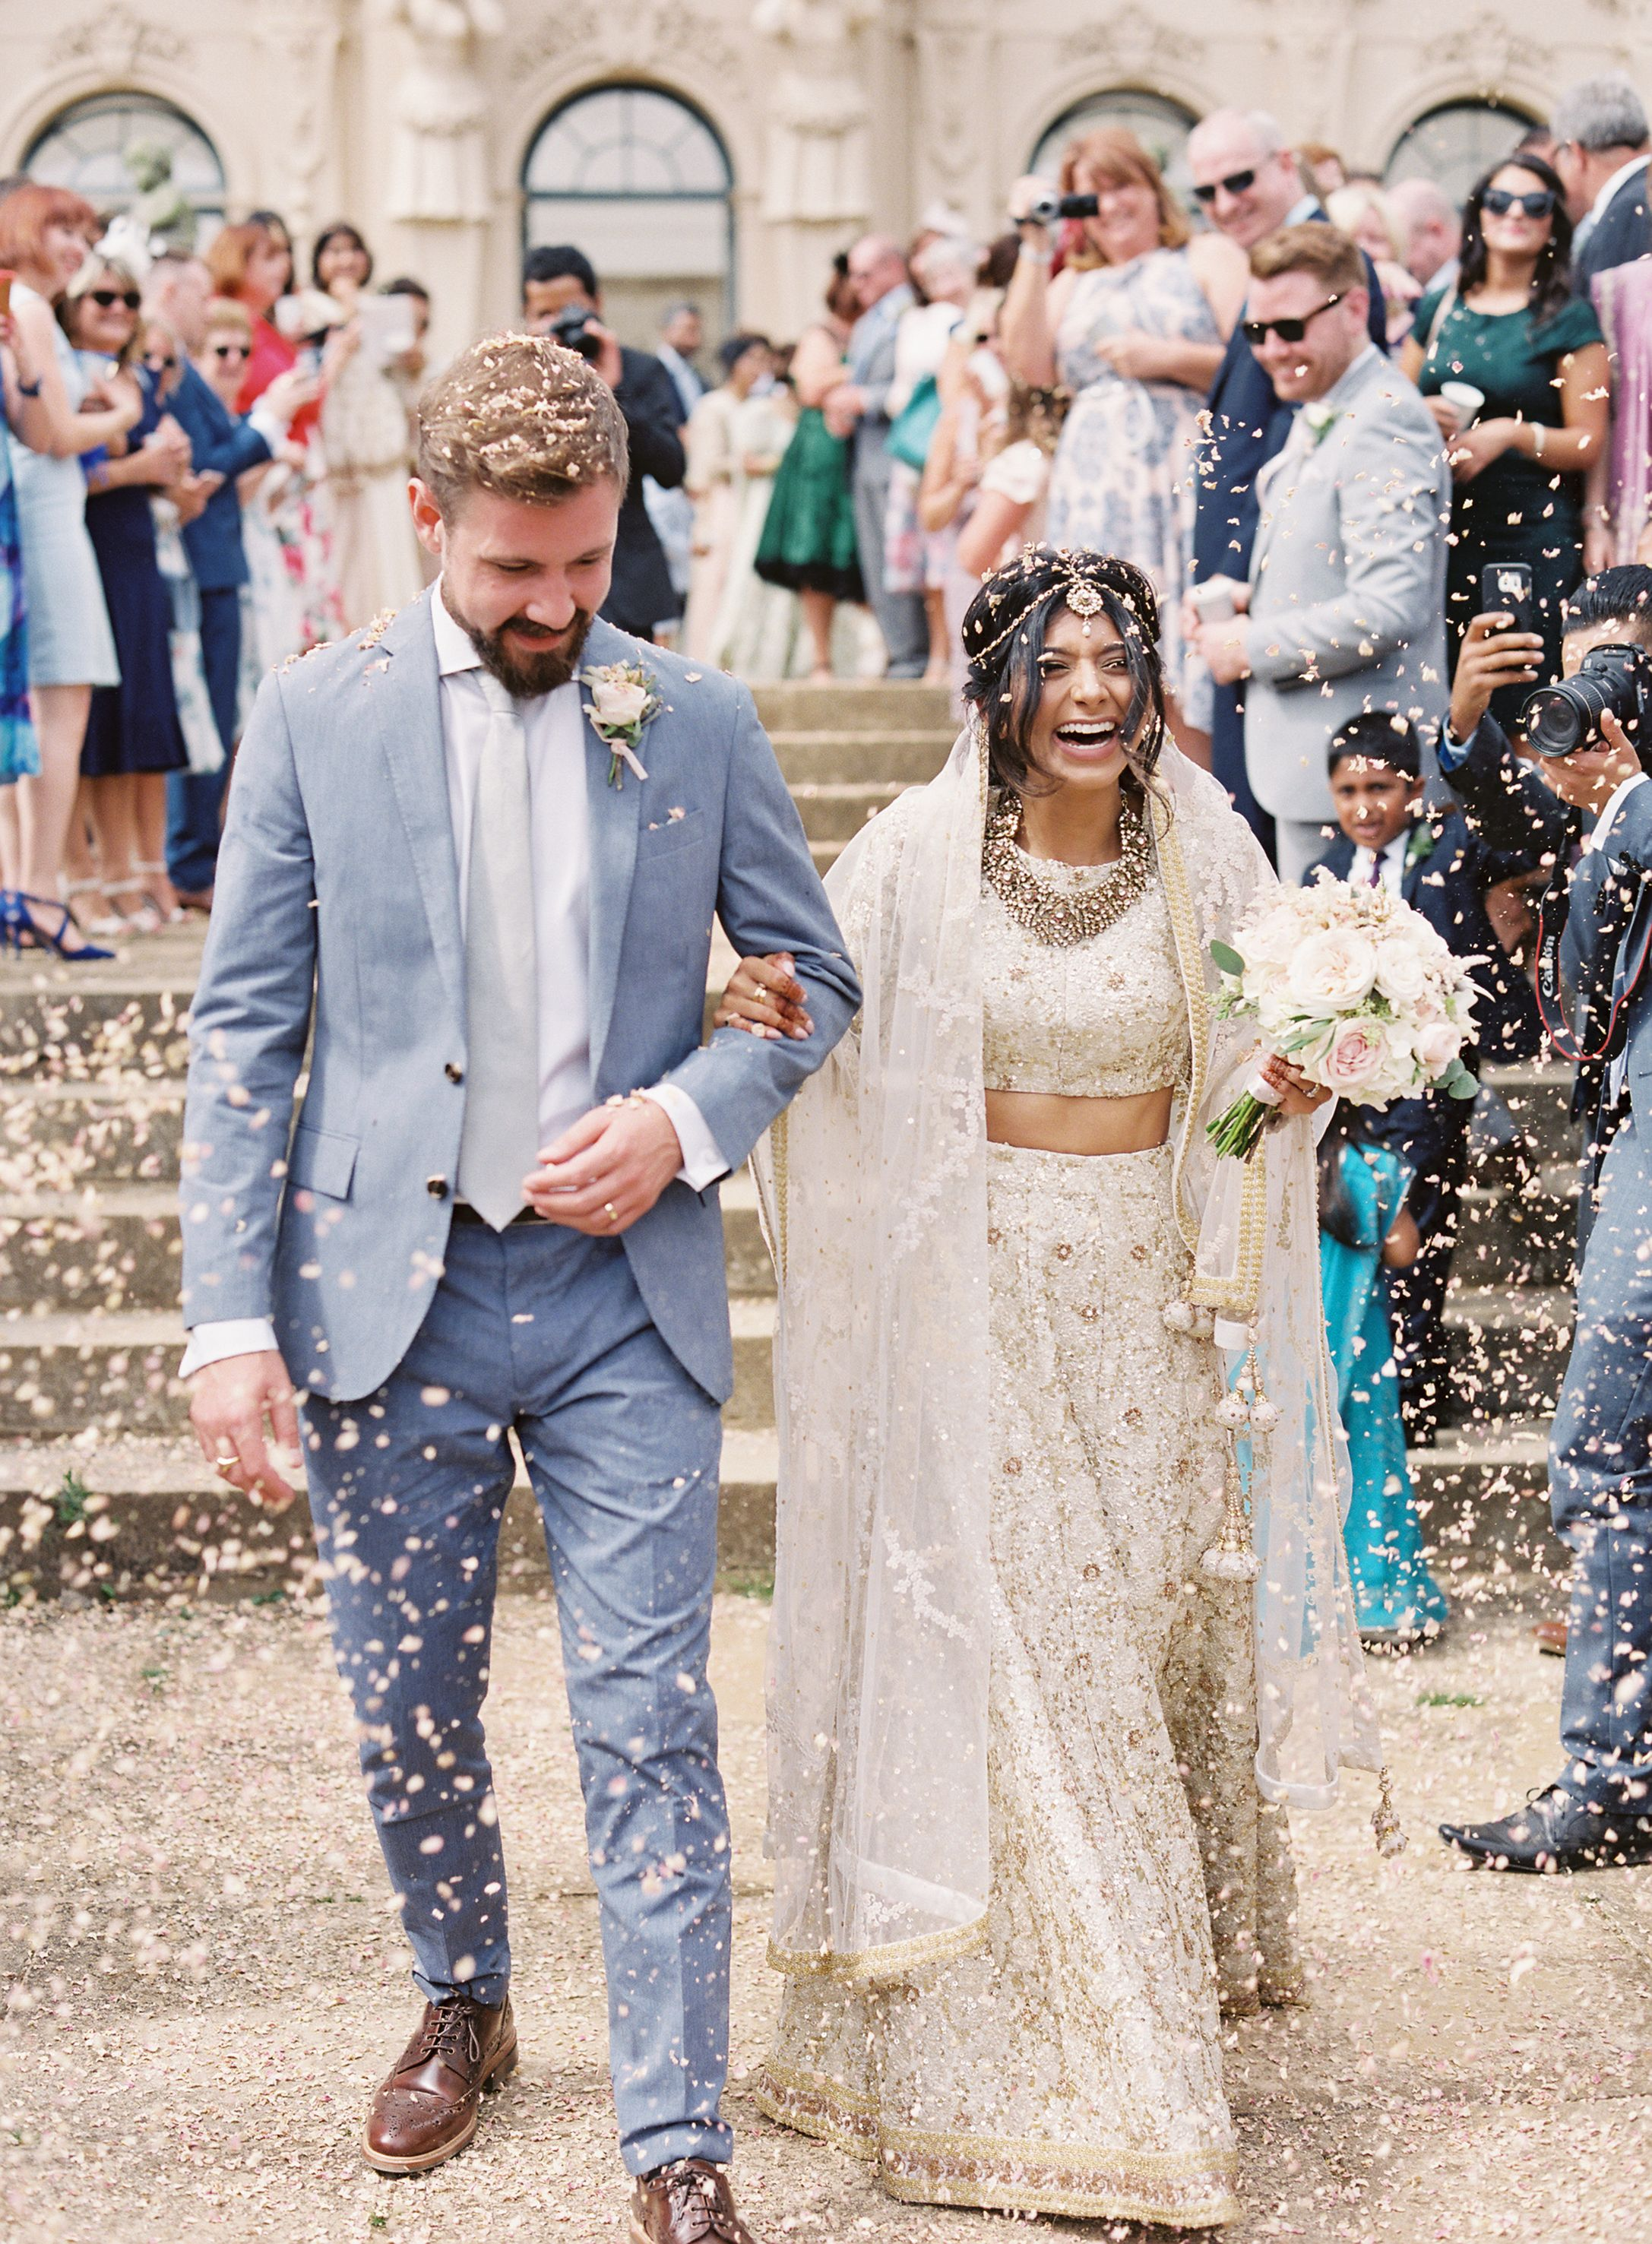 Elegant interfaith wedding with two ceremonies in the english elegant interfaith wedding with two ceremonies in the english countryside beautiful wedding recessional with flower petals on the happiest bride and junglespirit Images